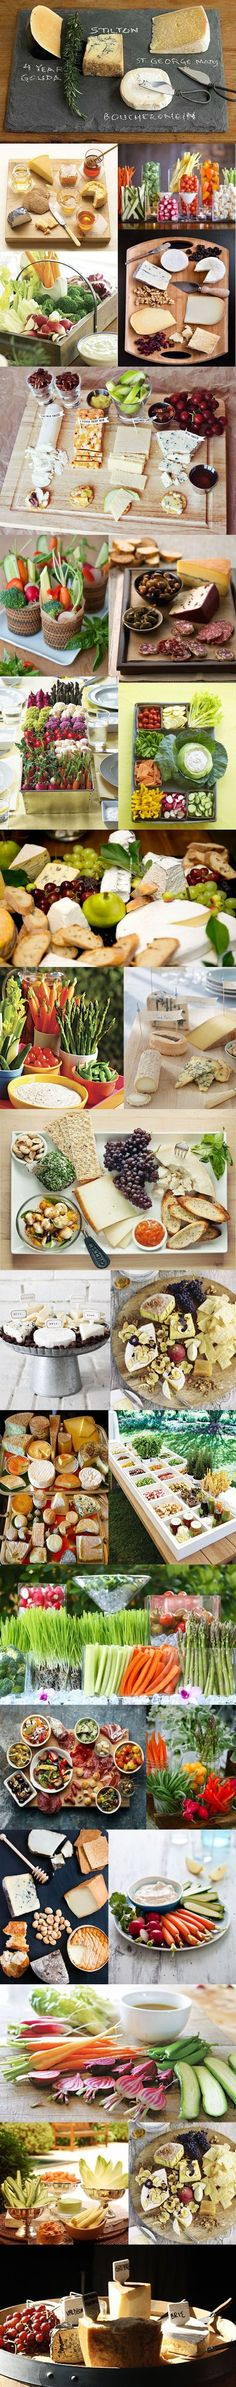 Cute appetizer displays for wine tasting party or any party: {www.wineglasswriter.com/}